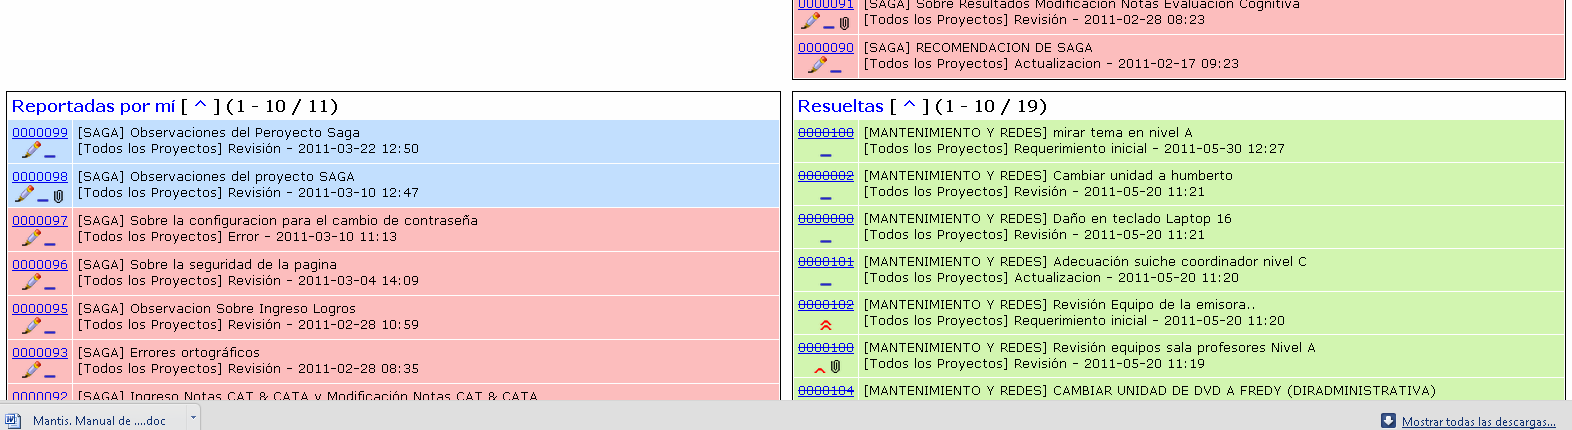 6.4.2 Reporte de incidencias en mantis Figura 16.